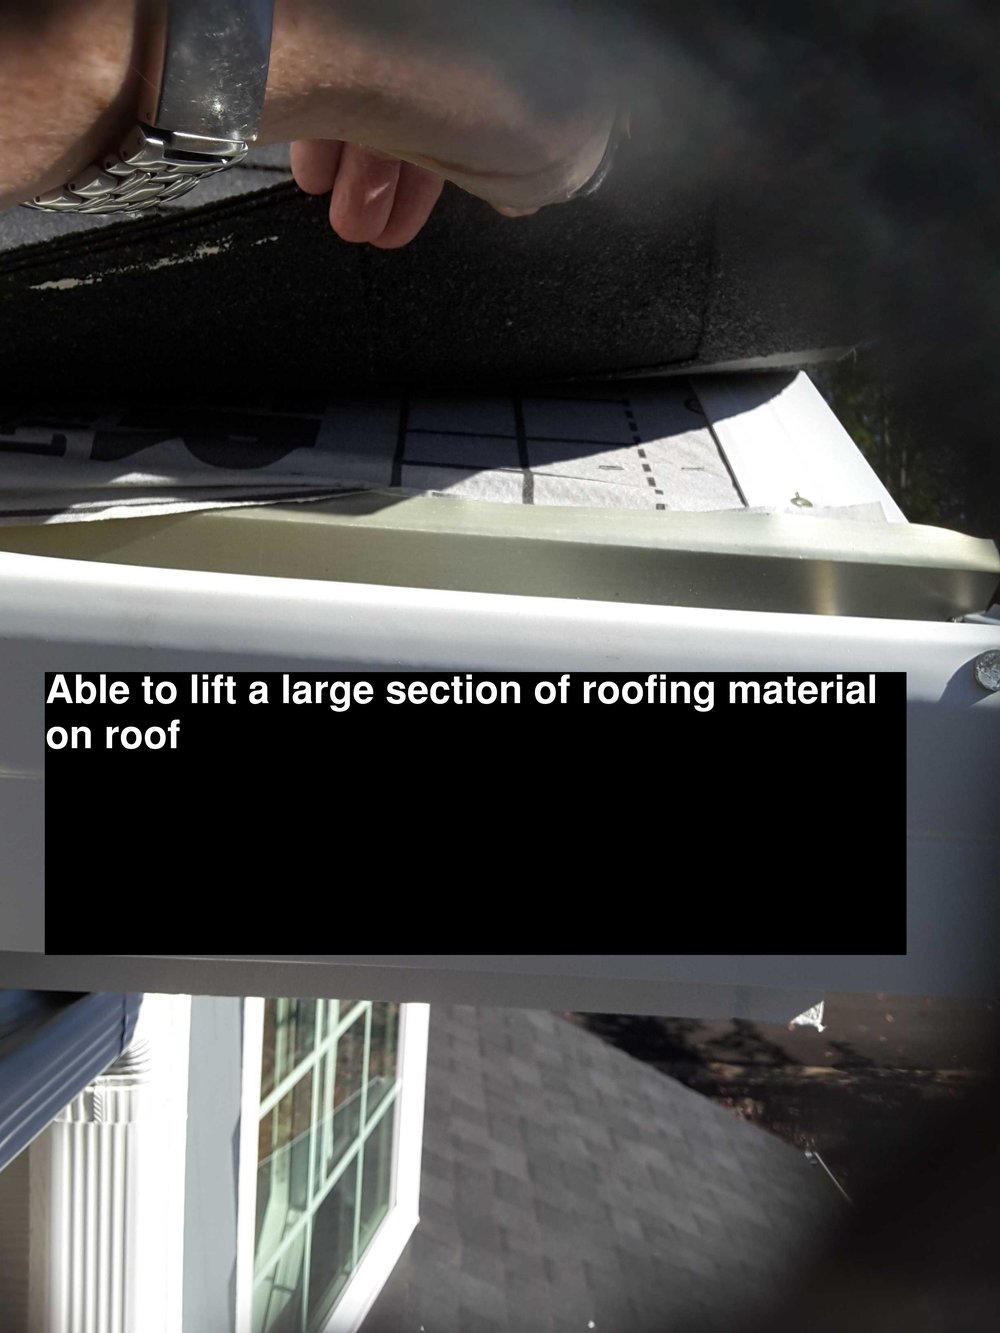 Roofinging material.jpg